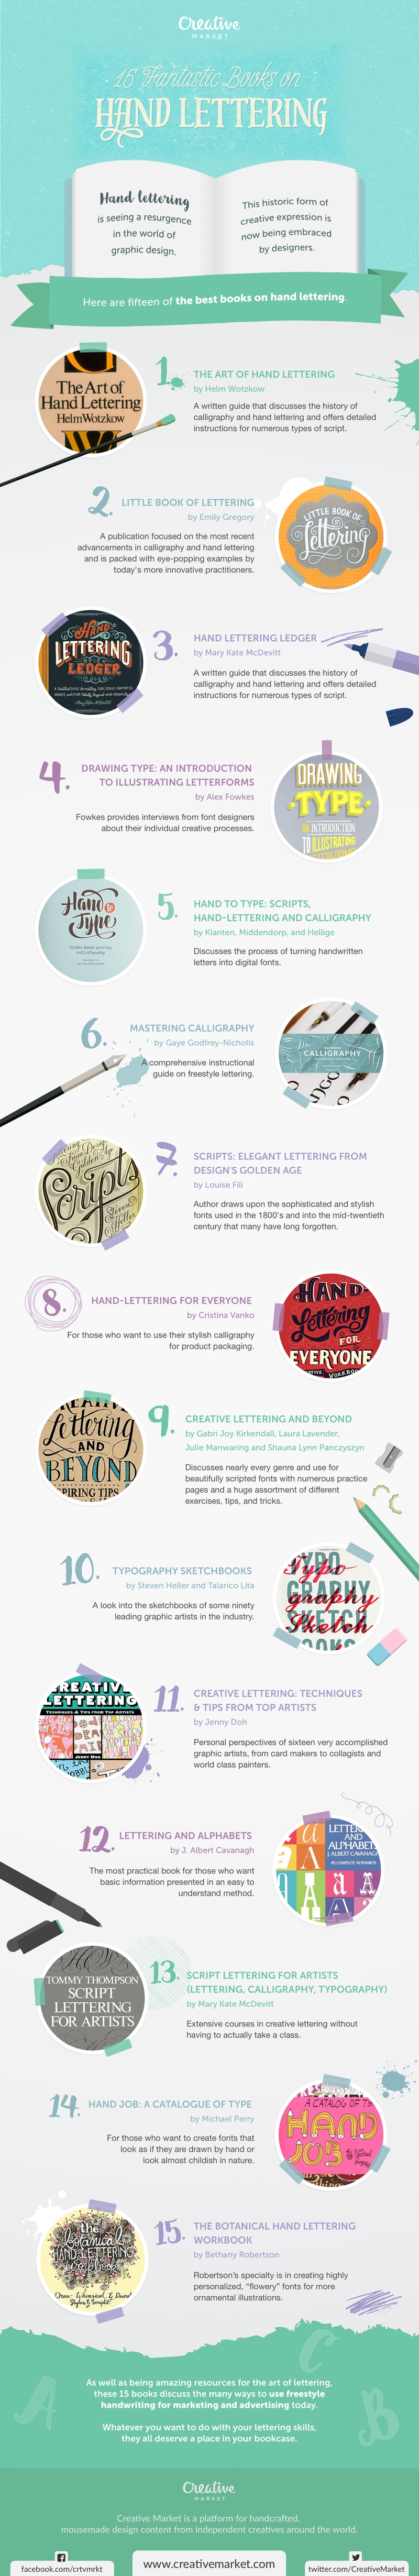 Ode to Hand Lettering: 15 Amazing Books - Infographic